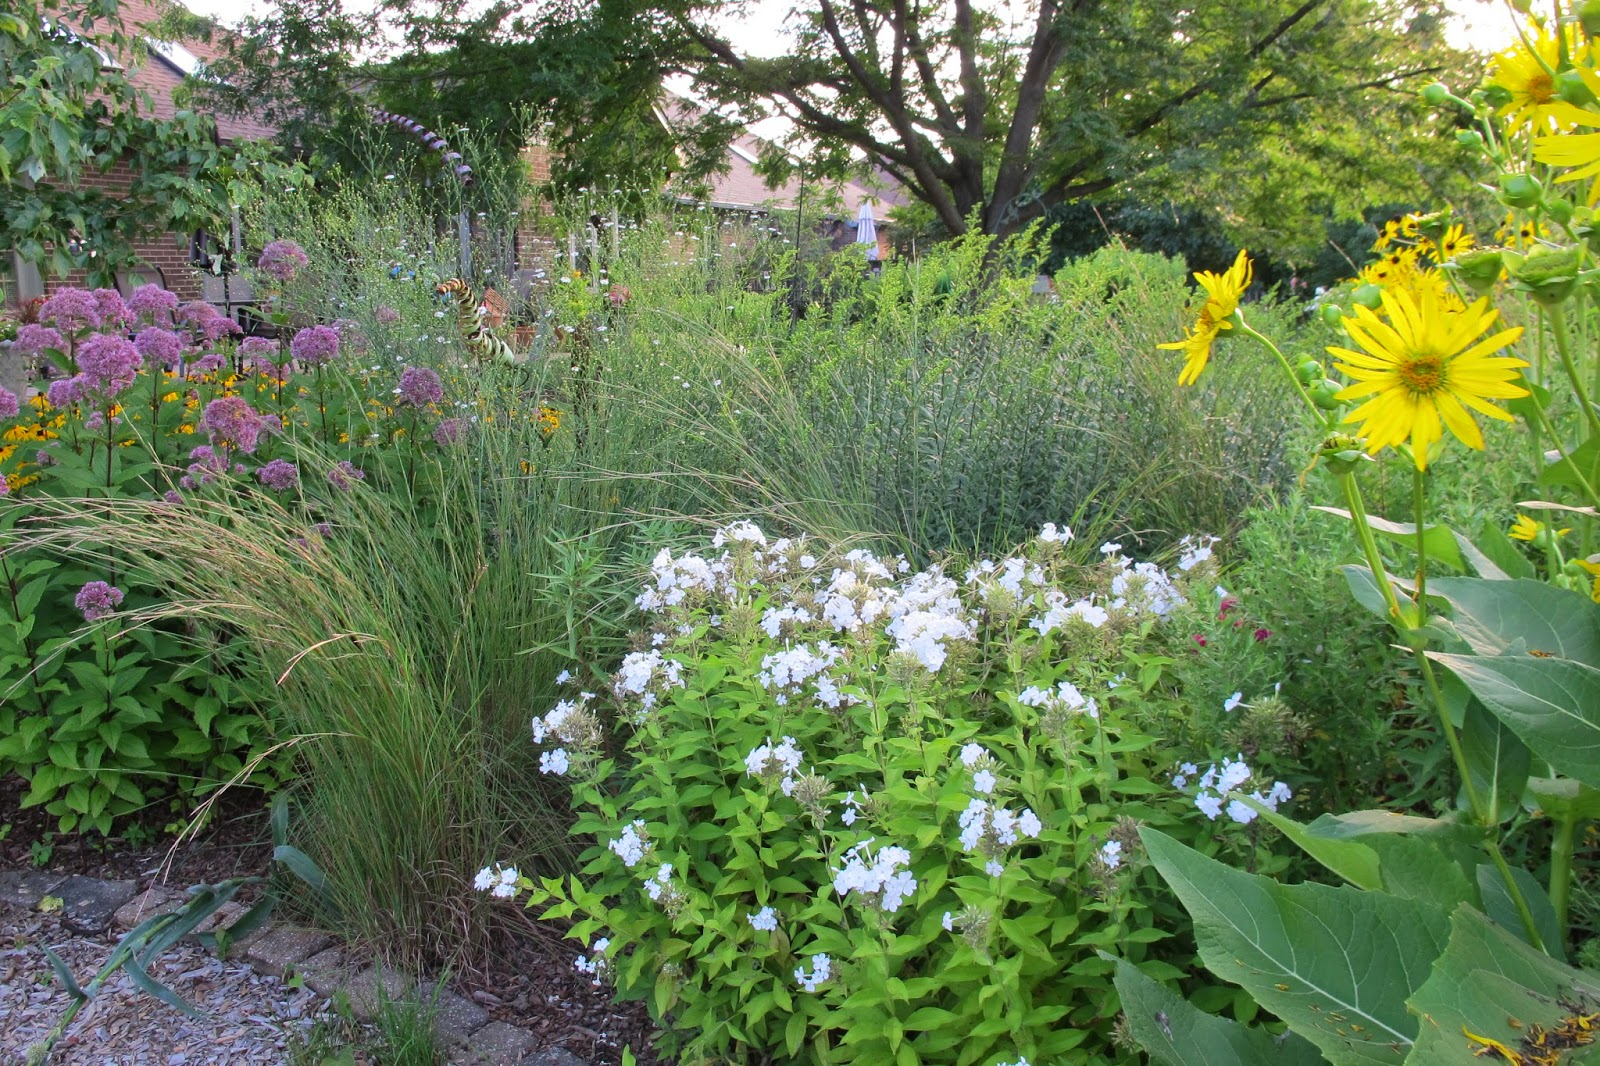 Garden in august in a garden - The Big Yellow Flowers Are Cup Plant Silphium Perfoliatum It Has Large Leaves And Can Be A Bit Of A My Garden I M Taking Over Flower So I Hear